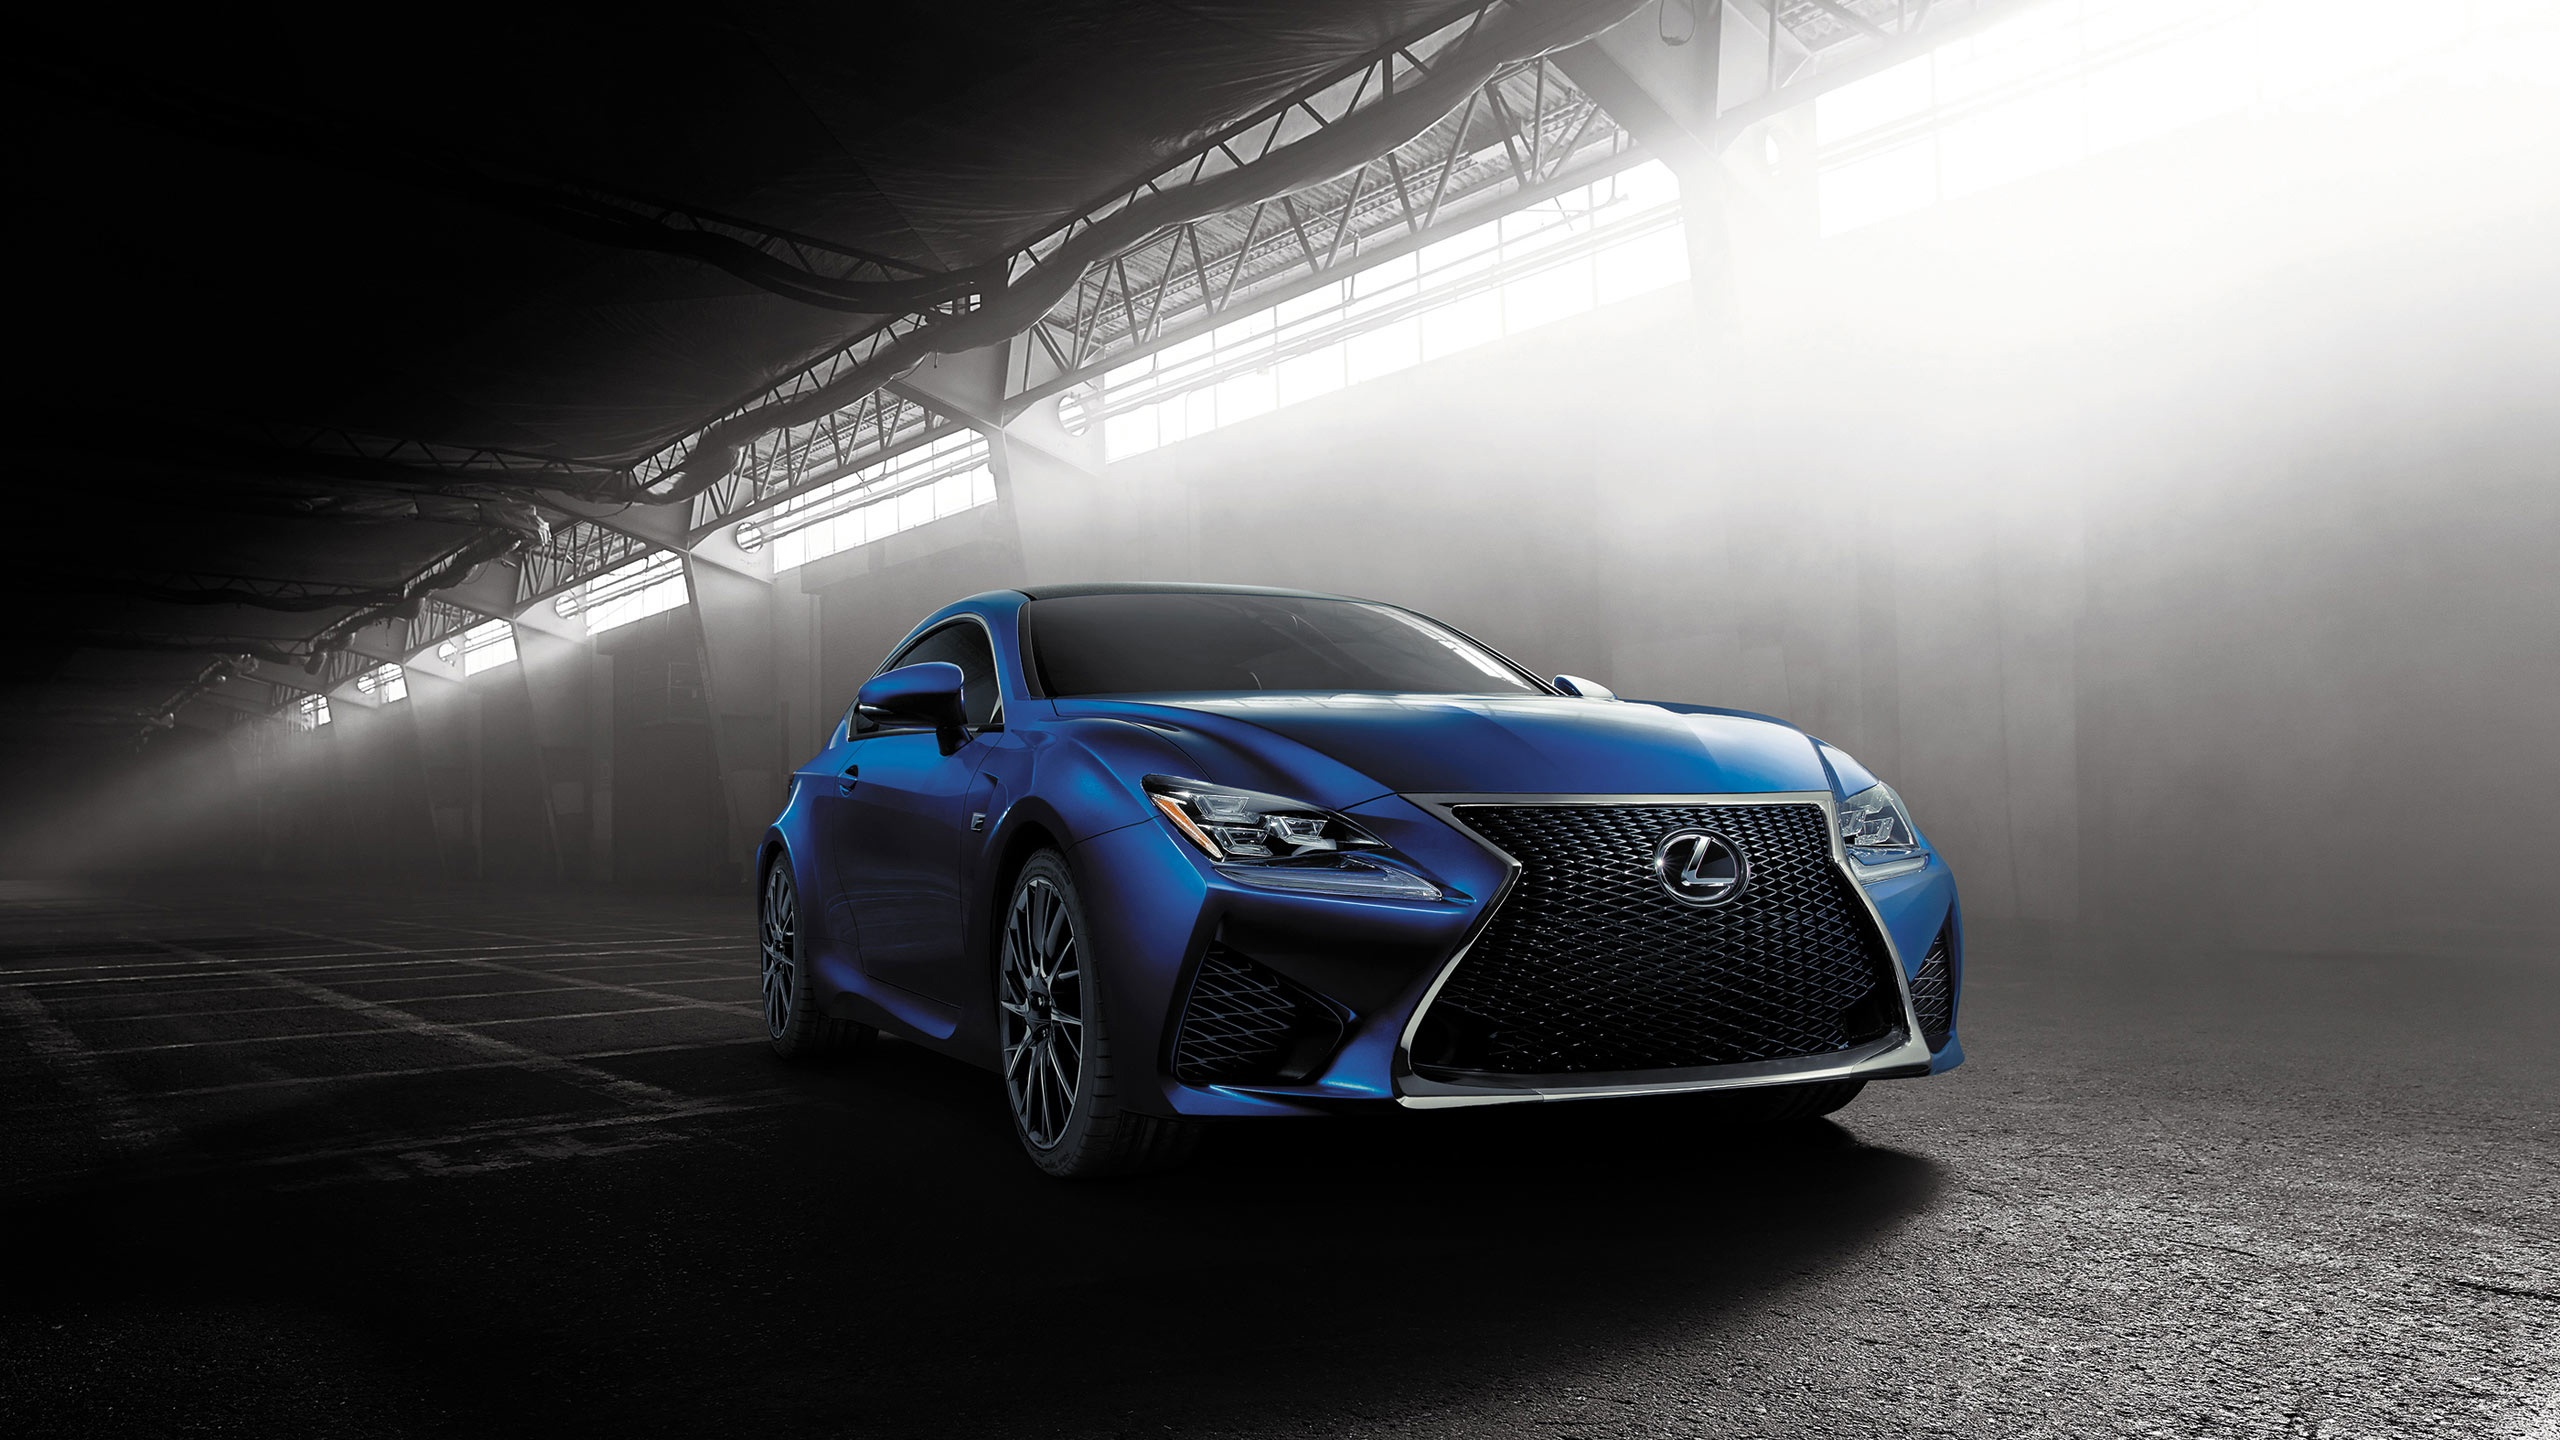 Lexus Wallpaper 2560 X 1440 2560x1440